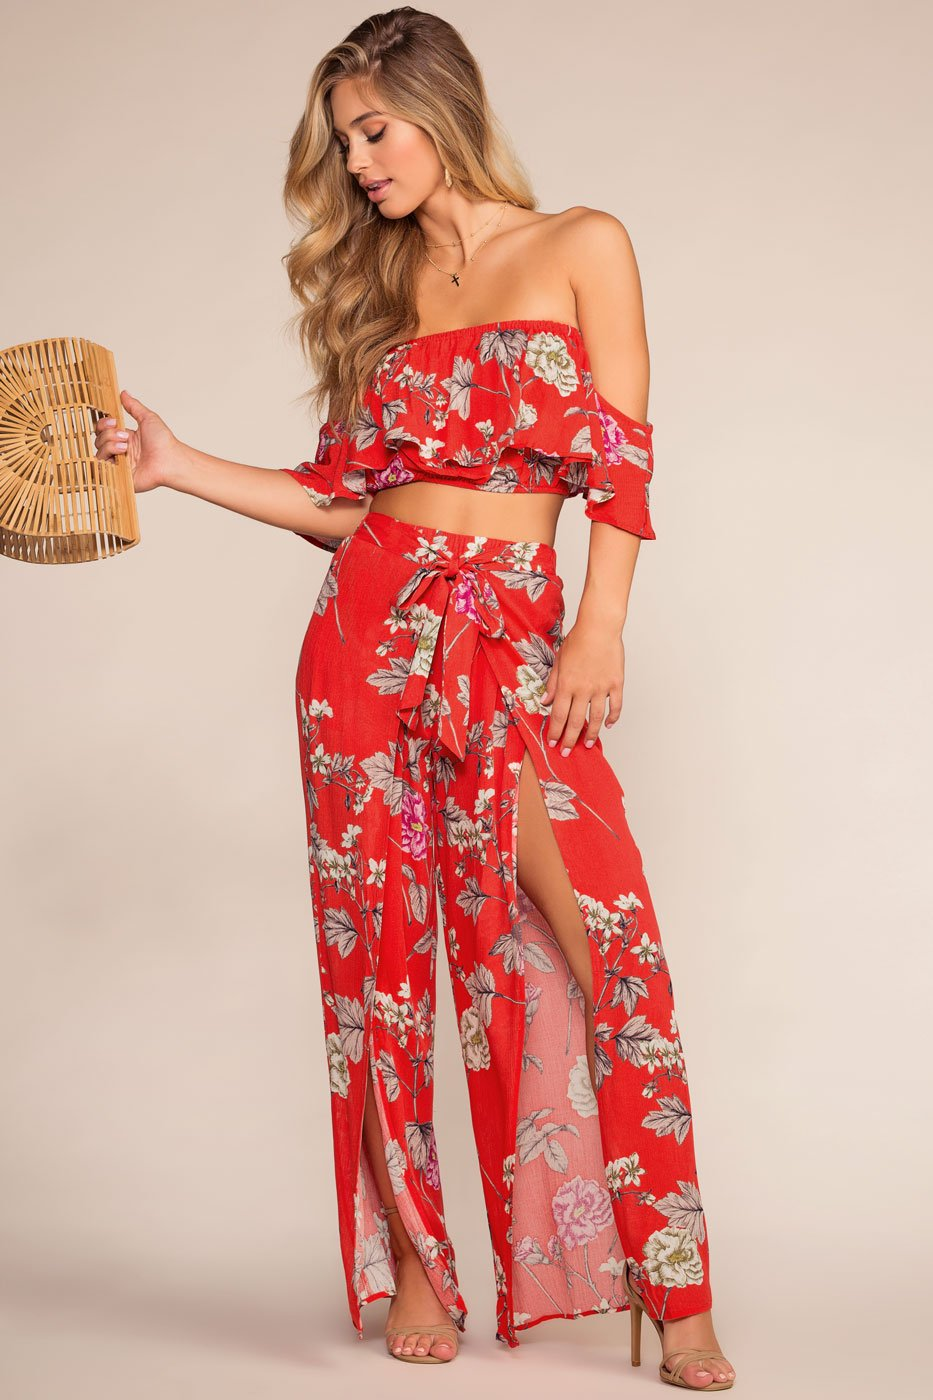 Tops - Bloom With A View Off The Shoulder Crop Top - Red